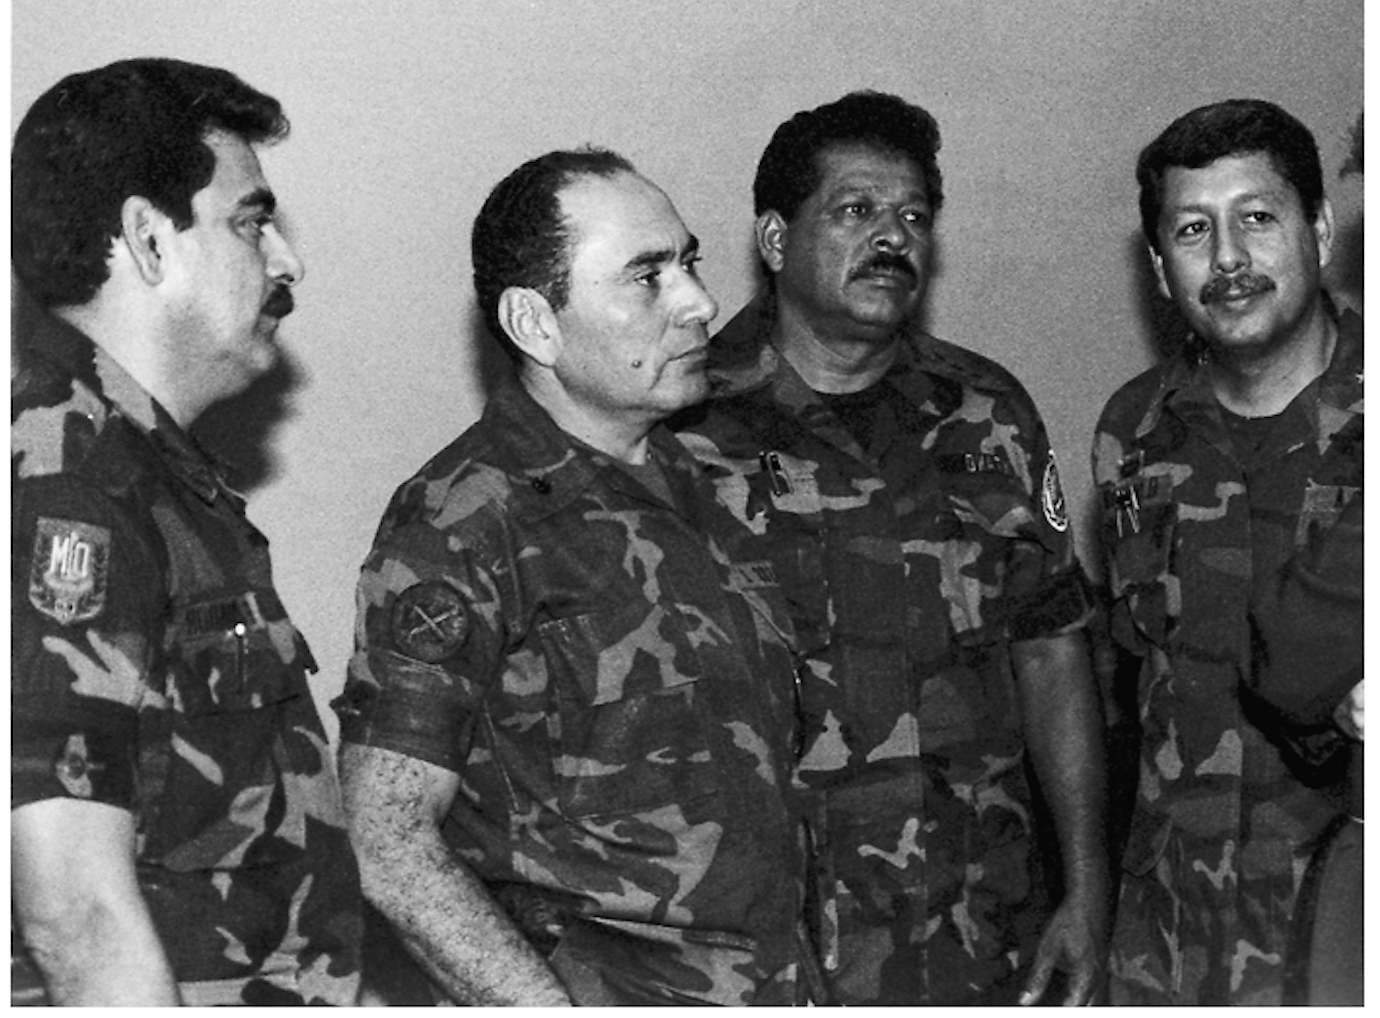 Ponce & Larios on the left, July 1989. In 2011 a Spanish judge issued a warrant for their arrest. Photo AP/La Prensa Gráfica